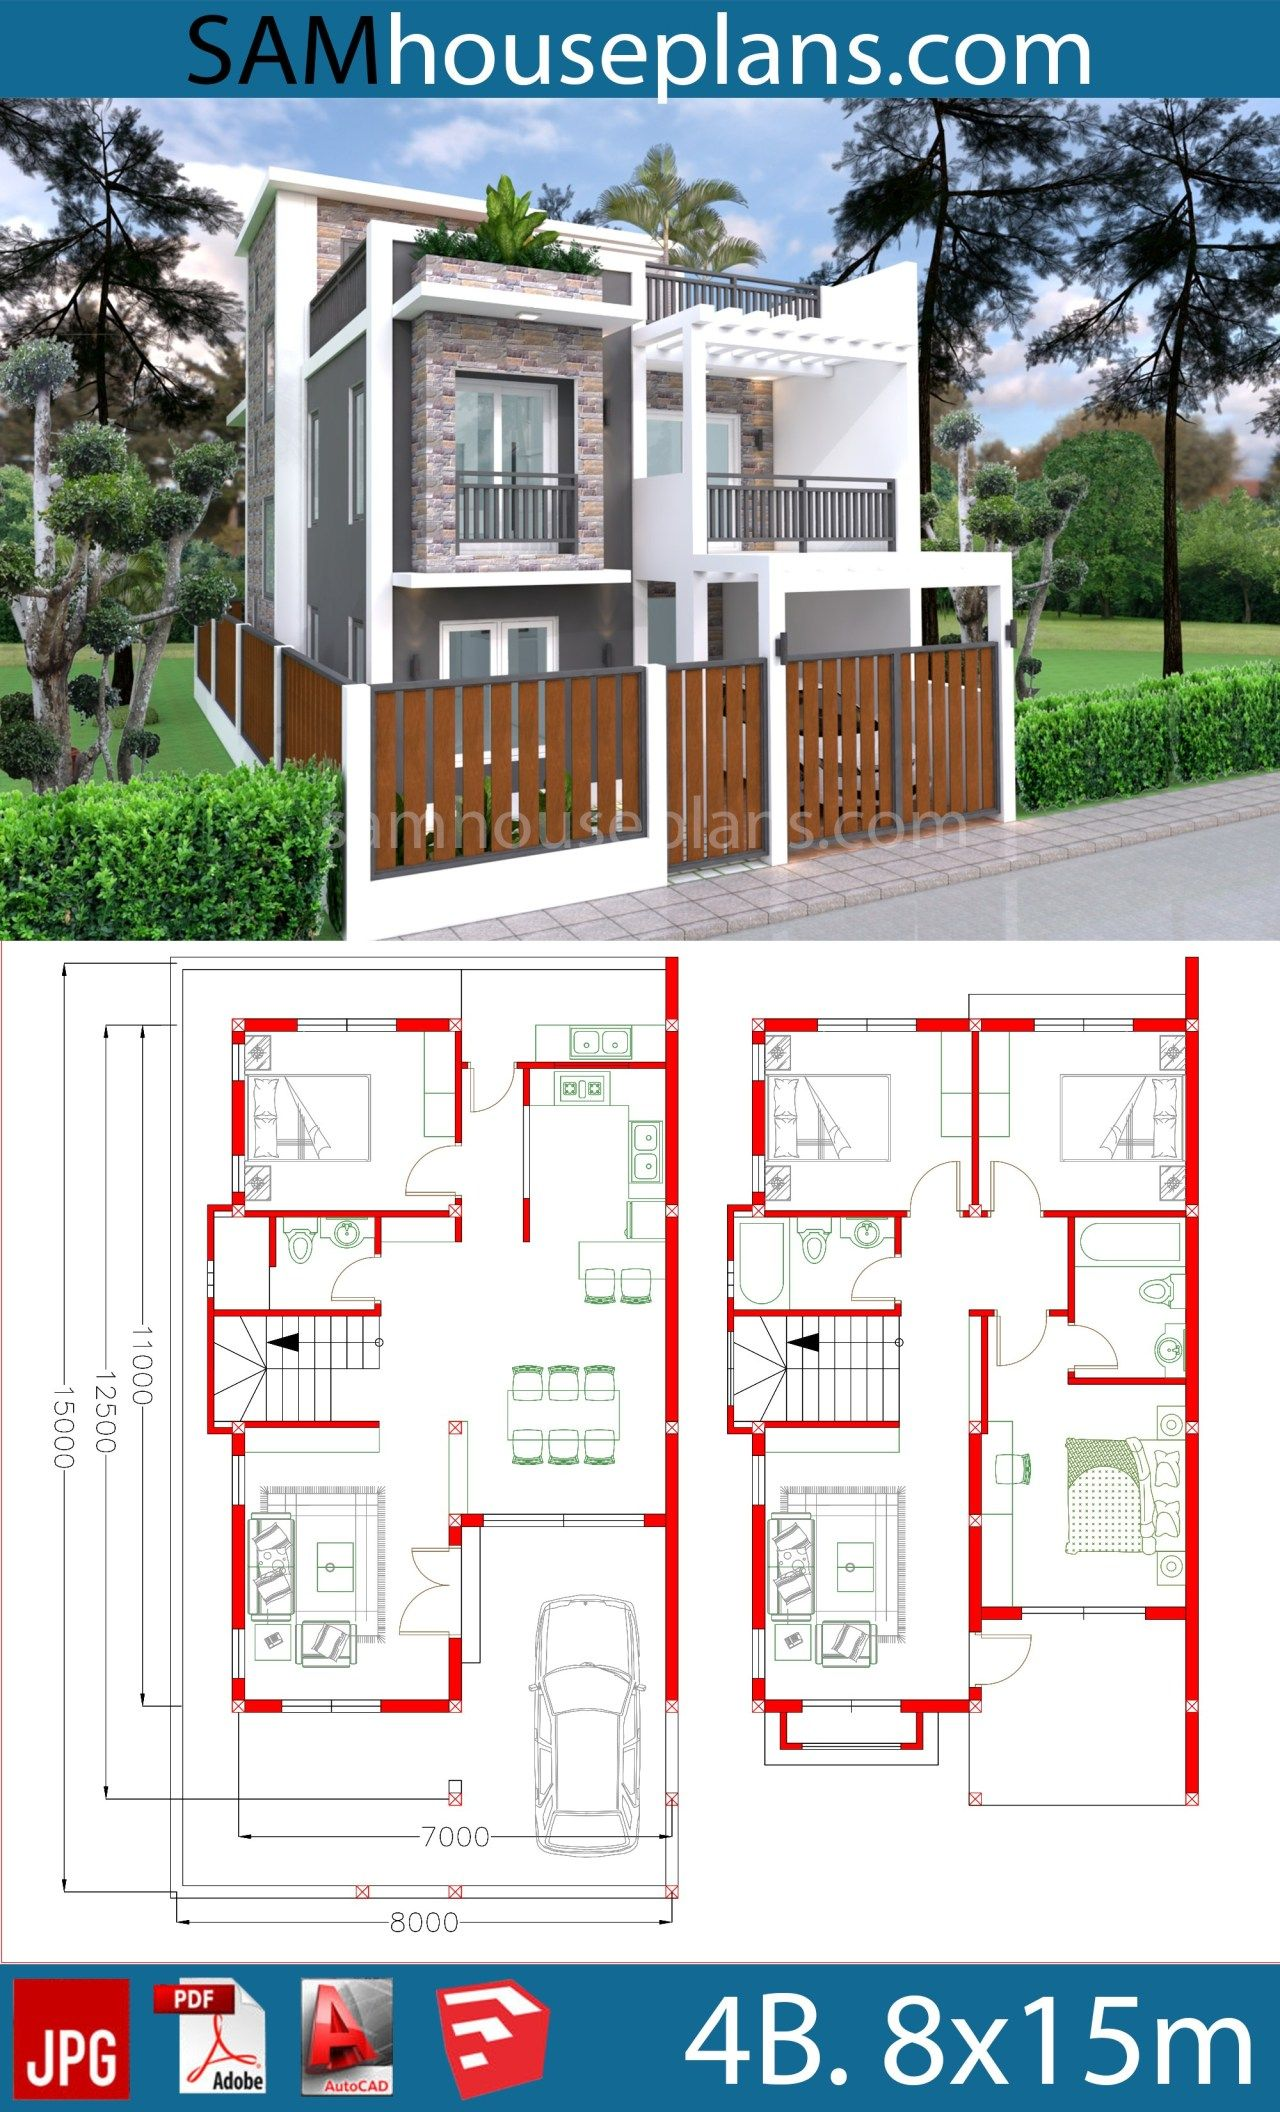 House Plans 7x11m Plot 8x15 With 4 Bedrooms Sam House Plans Architectural House Plans Model House Plan Affordable House Plans